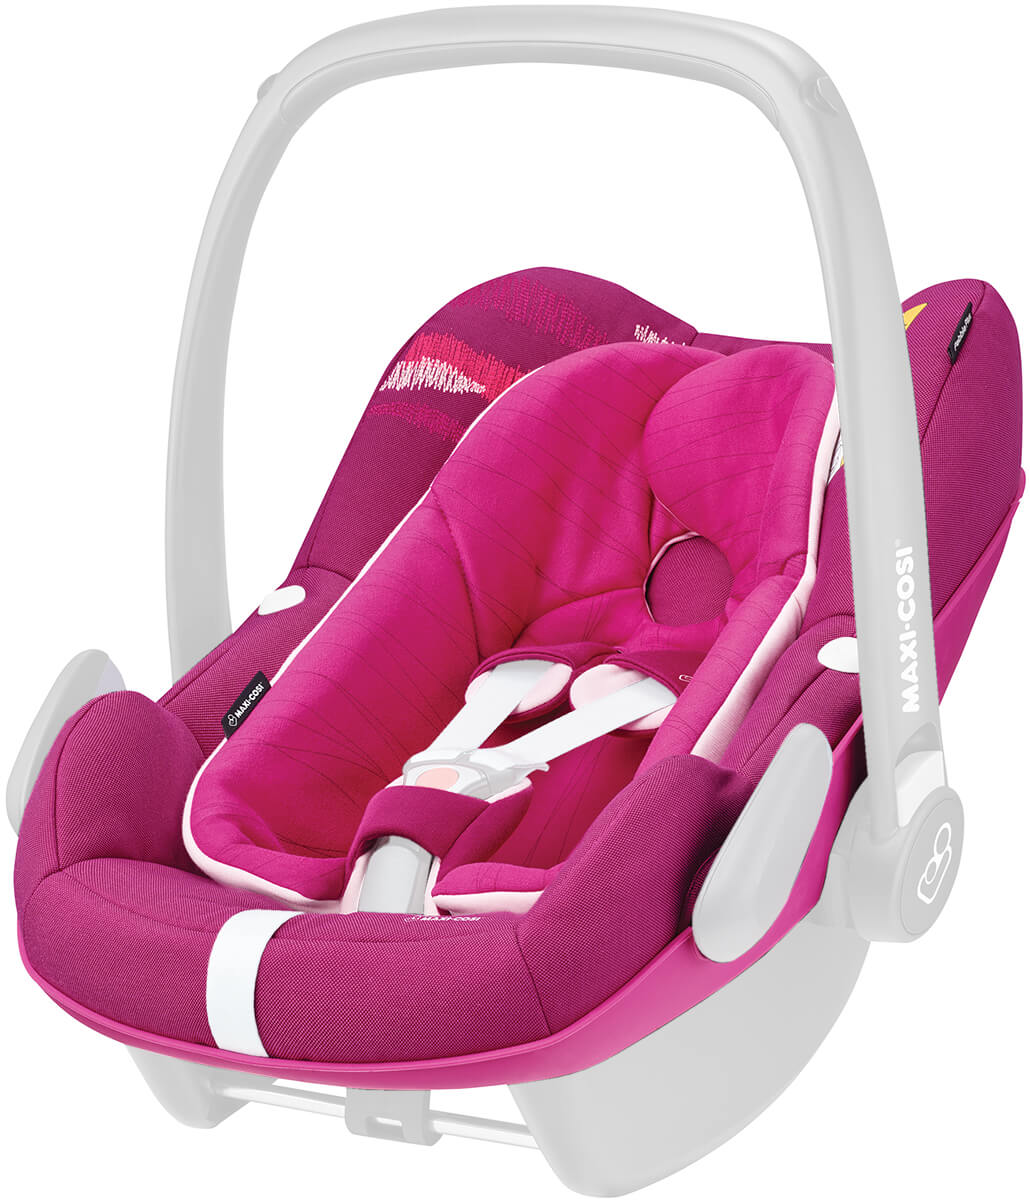 Maxi Cosi Seat Cover - Frequency Pink